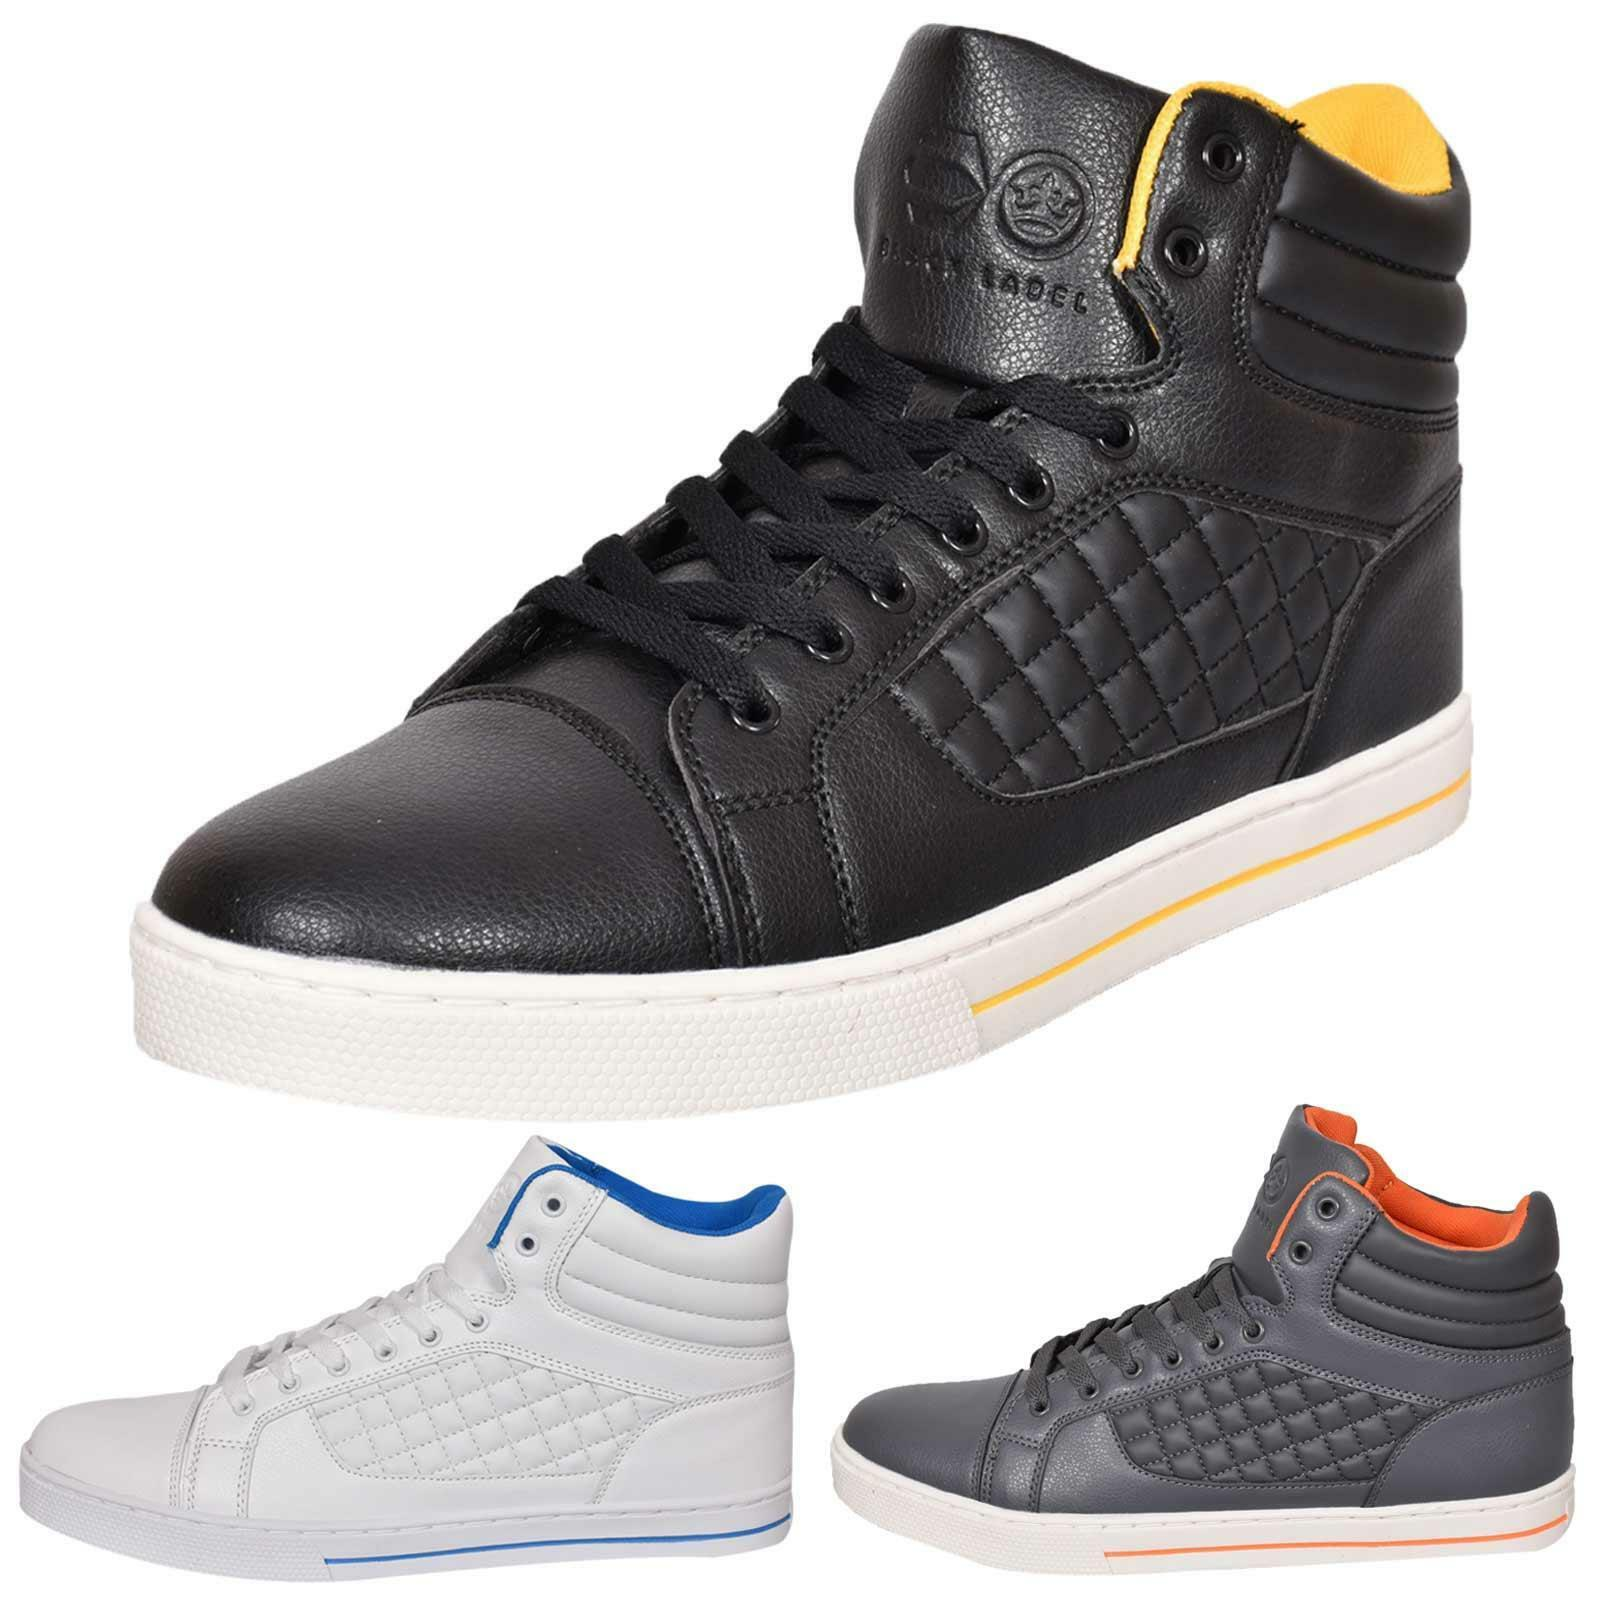 0f3a3bda9d Details about Mens Trainers Lace up Crosshatch High Tops Ankle Padded Shoes  New UK Sizes 7-12